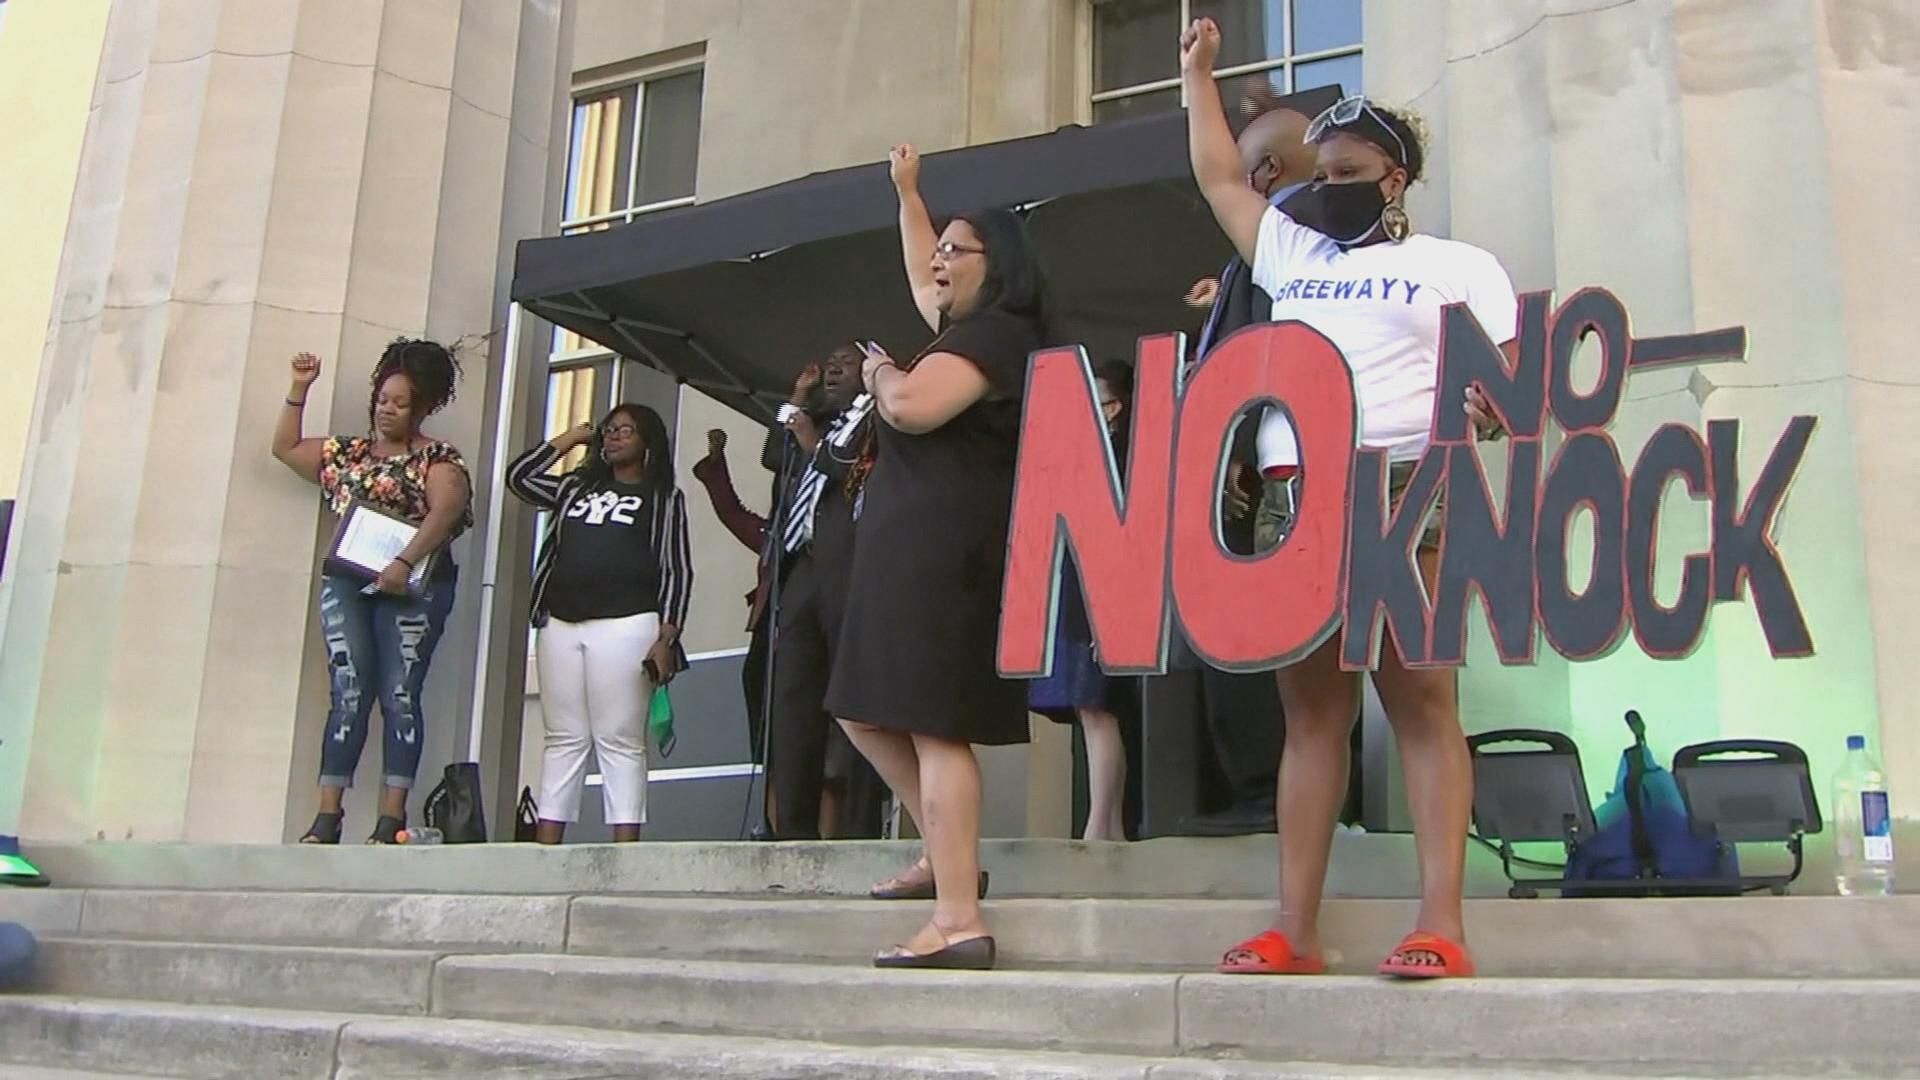 Demonstrators call for an end to no-knock police raids at a rally in Louisville, Ky., in the wake of Breonna Taylor's death. (NBC)